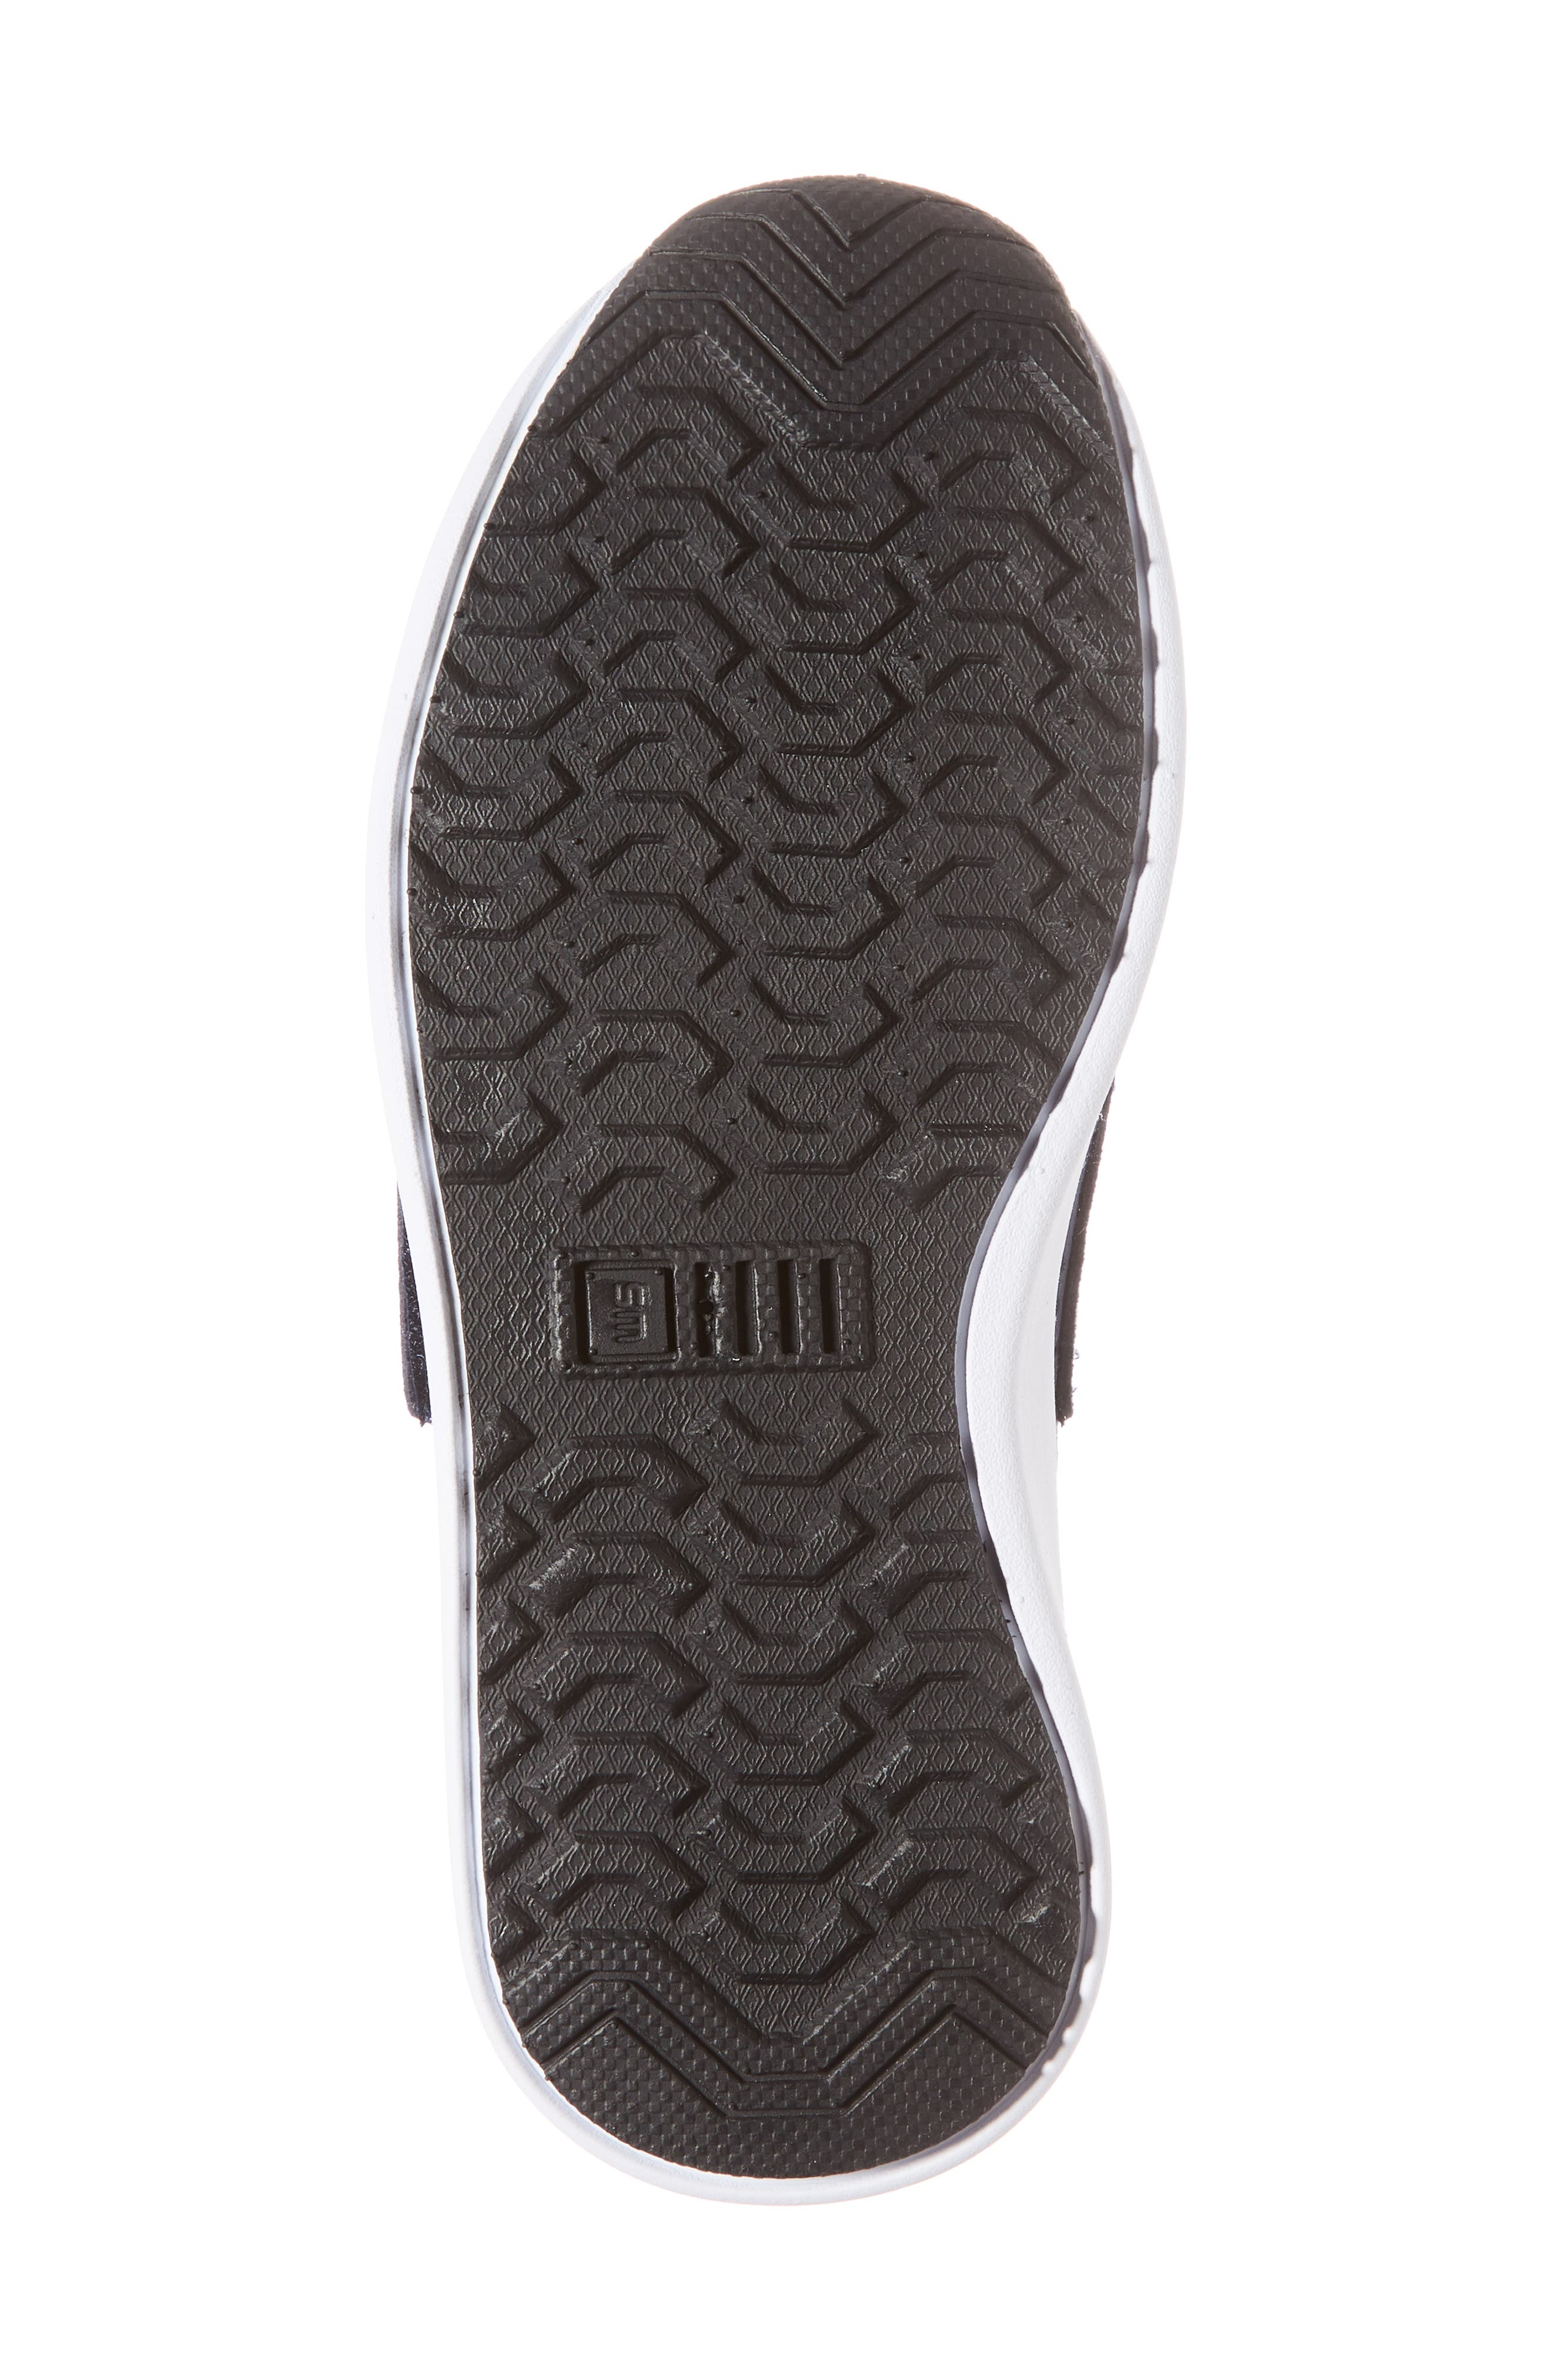 Brixxnv Perforated Sneaker,                             Alternate thumbnail 6, color,                             NAVY